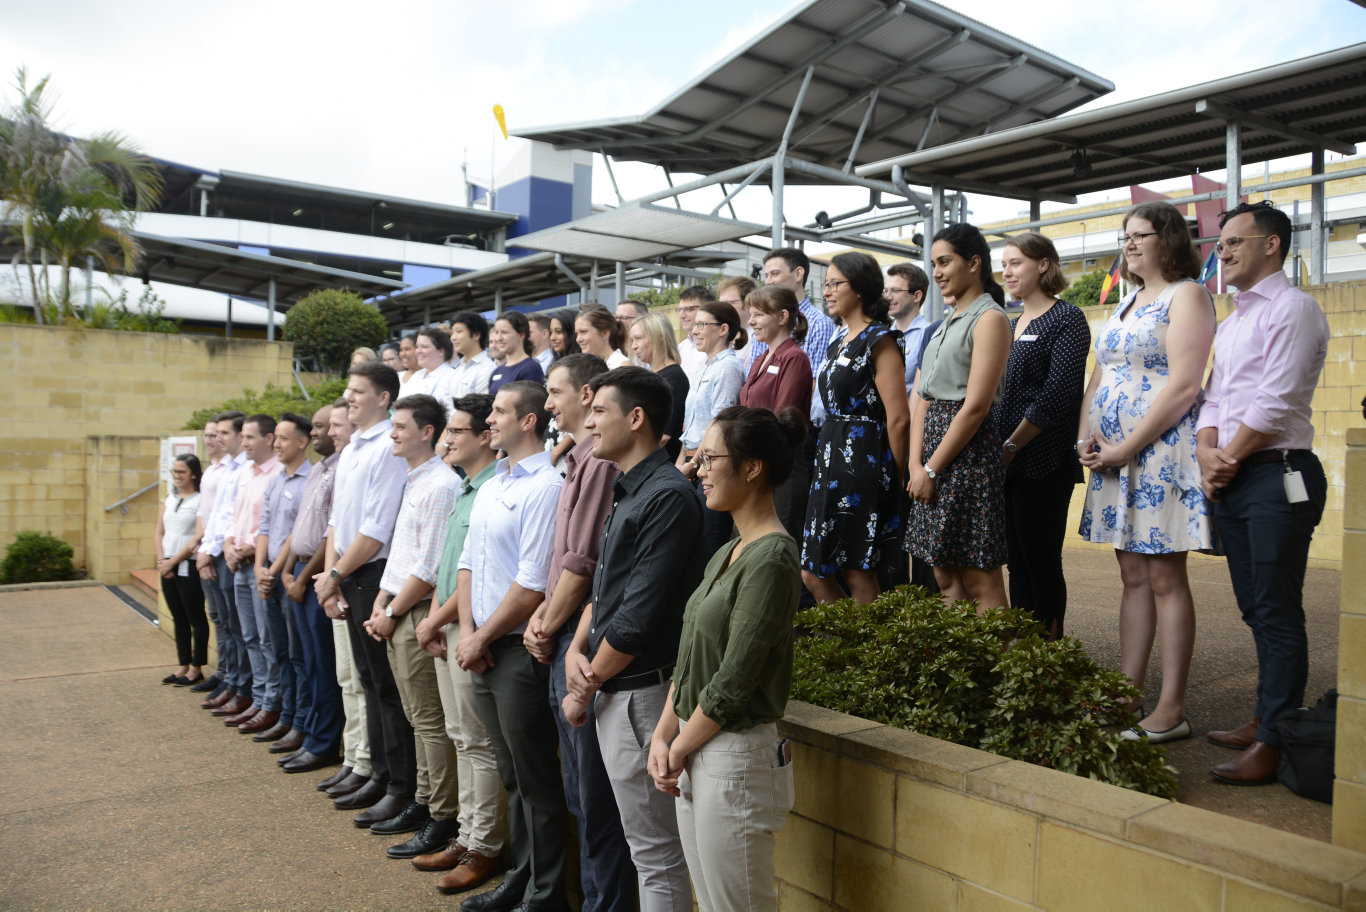 The new cohort of recruits for the Toowoomba Hospital in 2019.